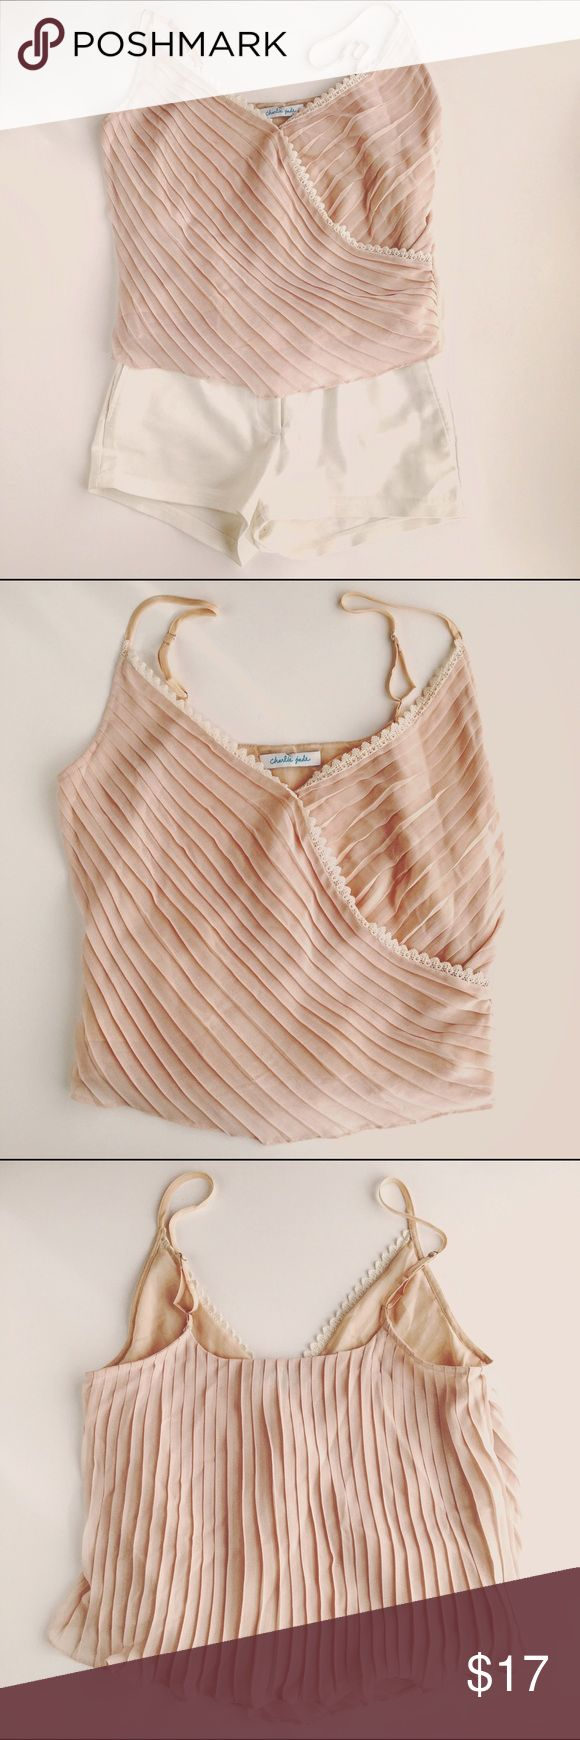 """Charlie Jade pink lace pleated Silk(?) Camisole New without tags  Lovely pleated blush top for spring. Fully lined. Wear alone or with a cardigan for a cute outfit.  Size, Fabric content & care labels are missing. Charlie Jade specializes in silk clothing and this top does appear to be silk. Based on measurements top appears to be a  Size Small.  Flat measurements:  Straps are adjustable,   Between straps - 12""""5, Bust - 18"""", Length - 18"""" not including adjustable straps  Shoulders - 12"""" Bust…"""